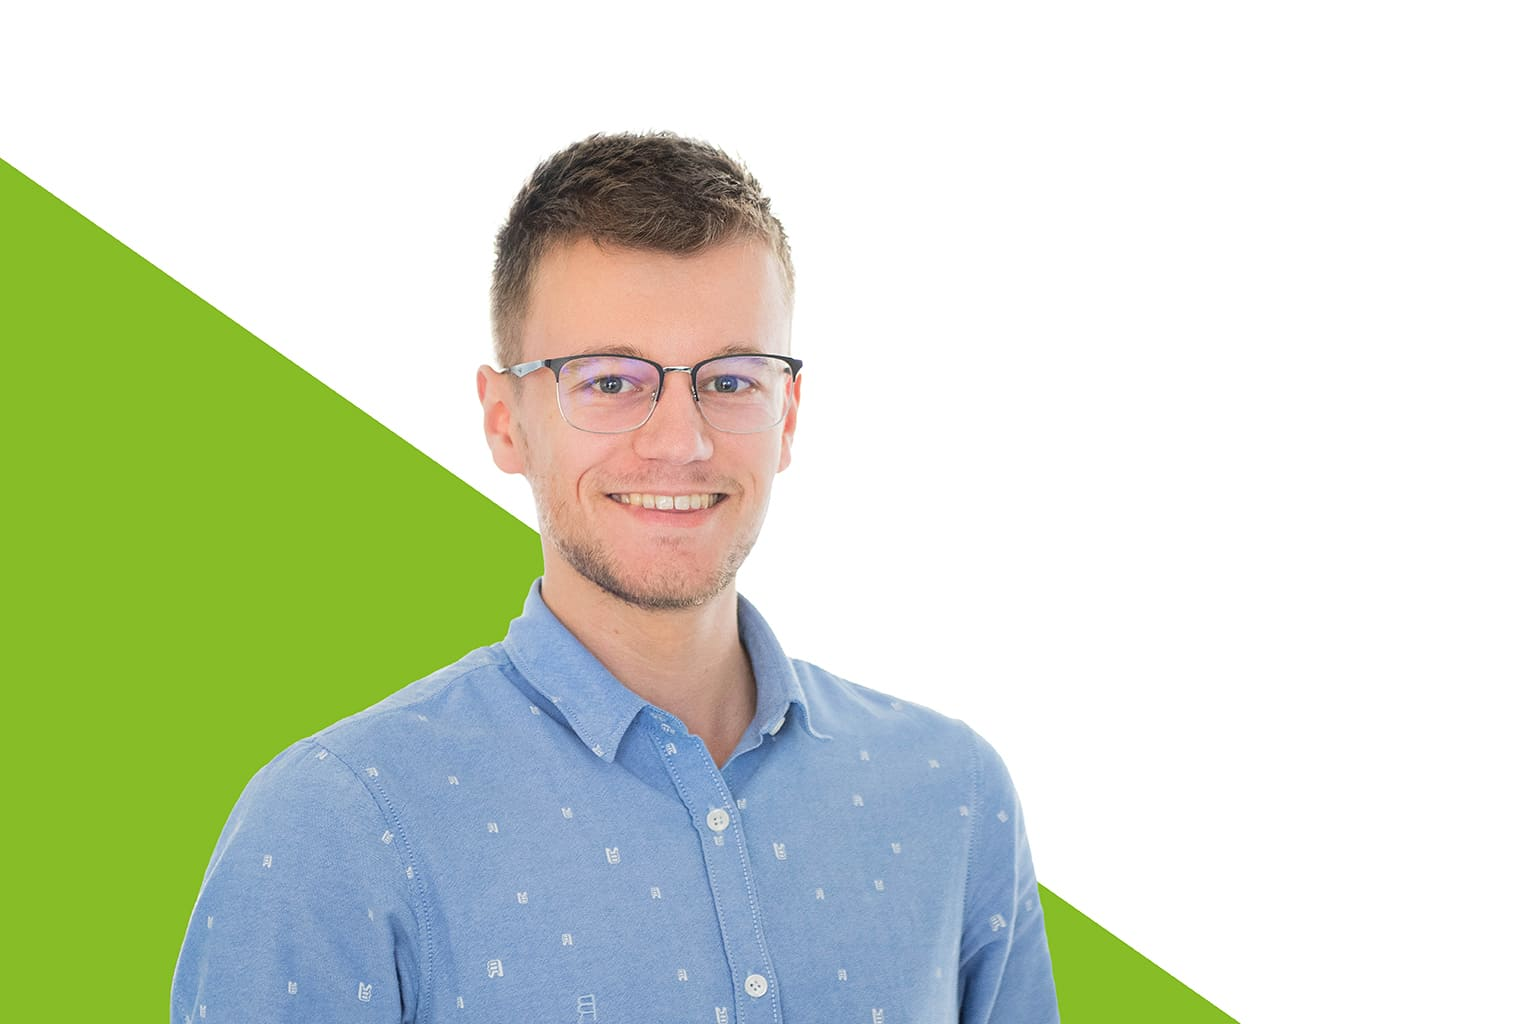 Sander de Louw, De Louw Accountants